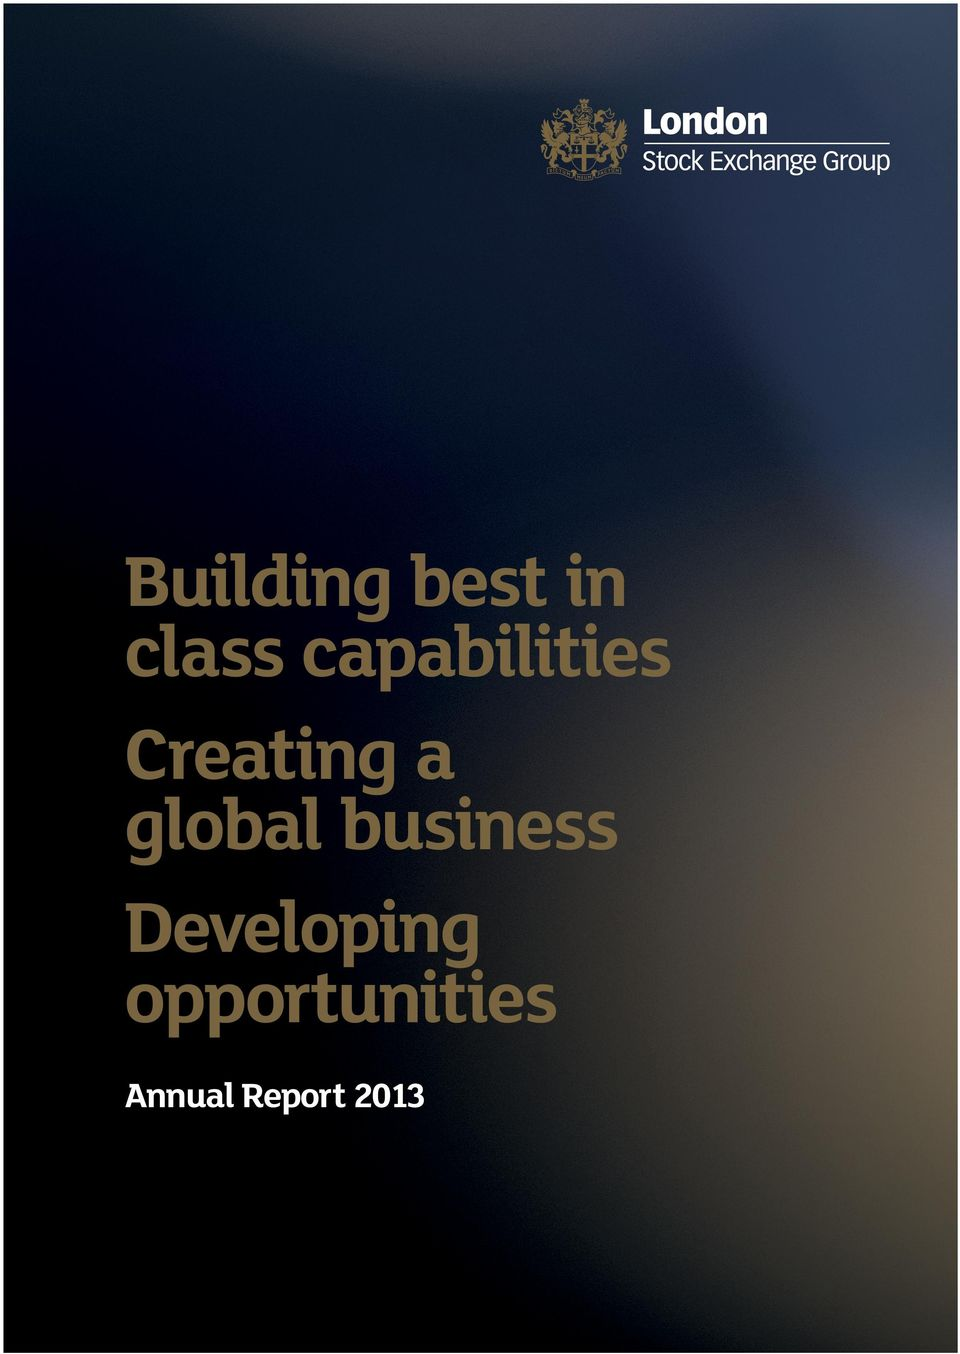 business Developing opportunities Annual Report 2013